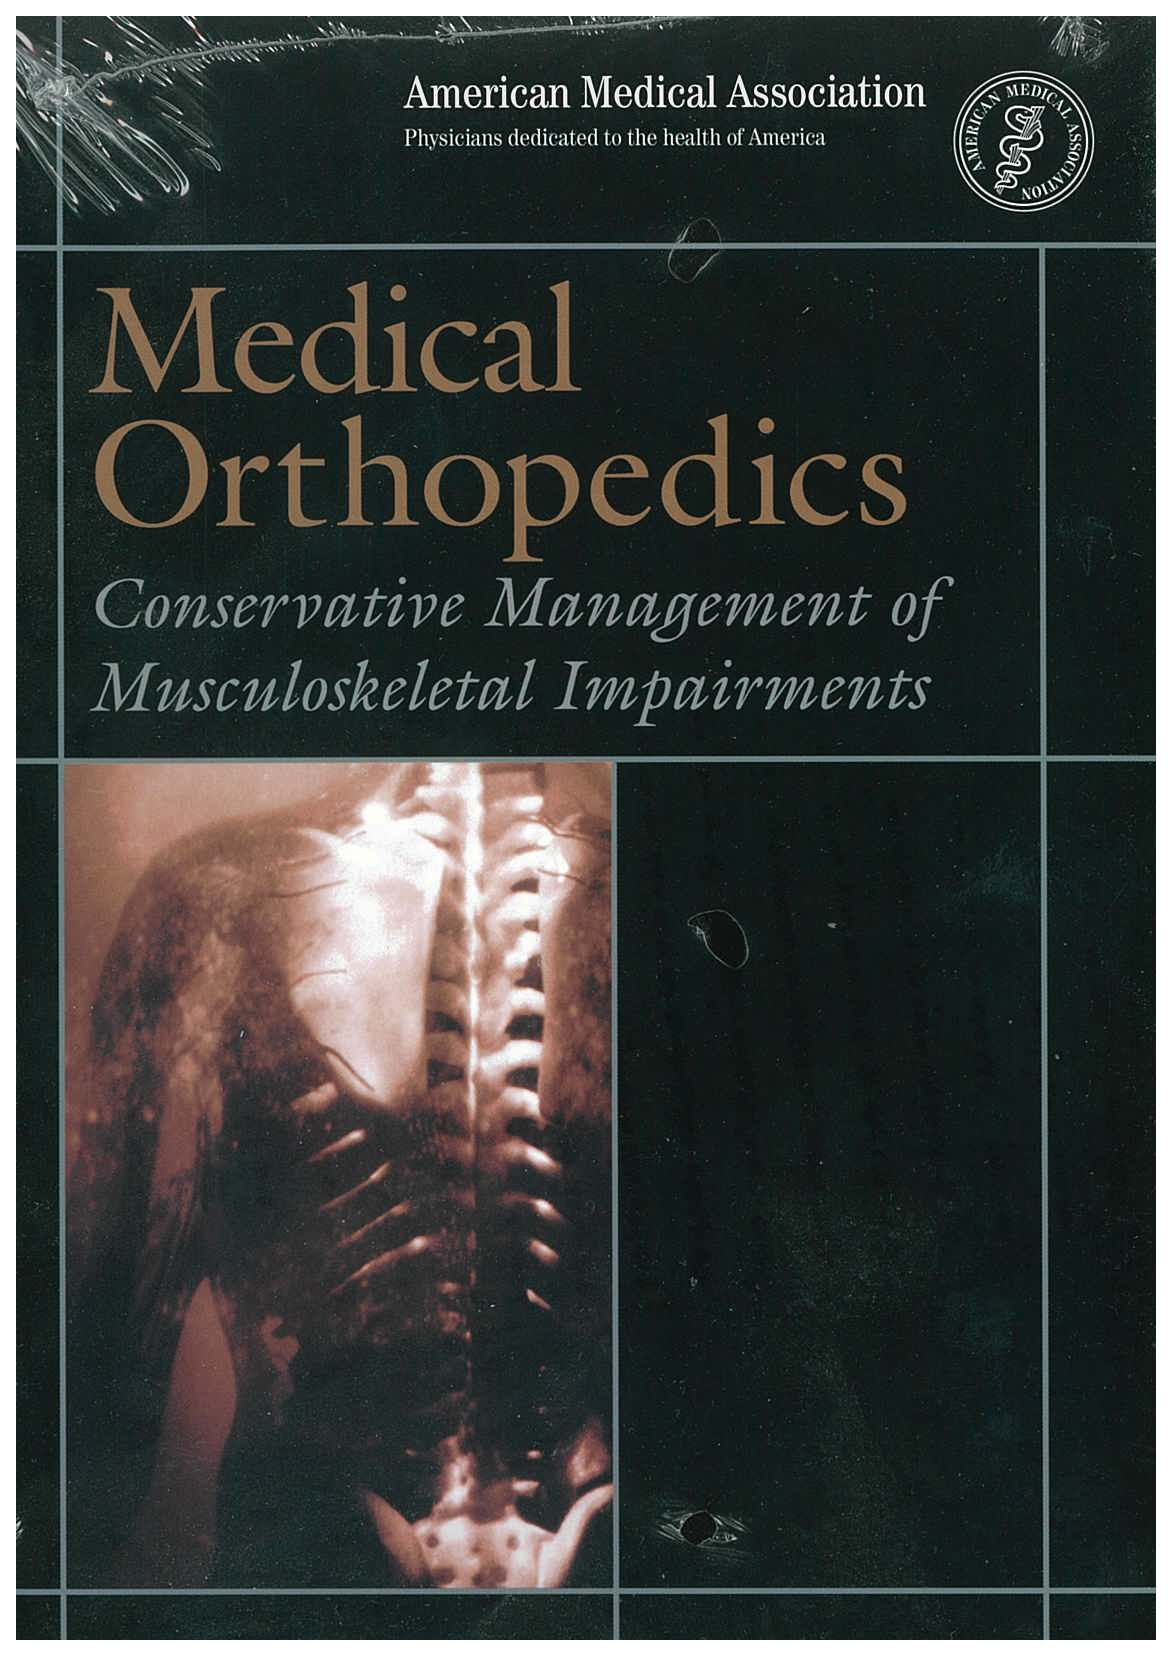 AMA Medical Orthopedics: Conservative Management of Musculoskeletal Impairments - Featured Image